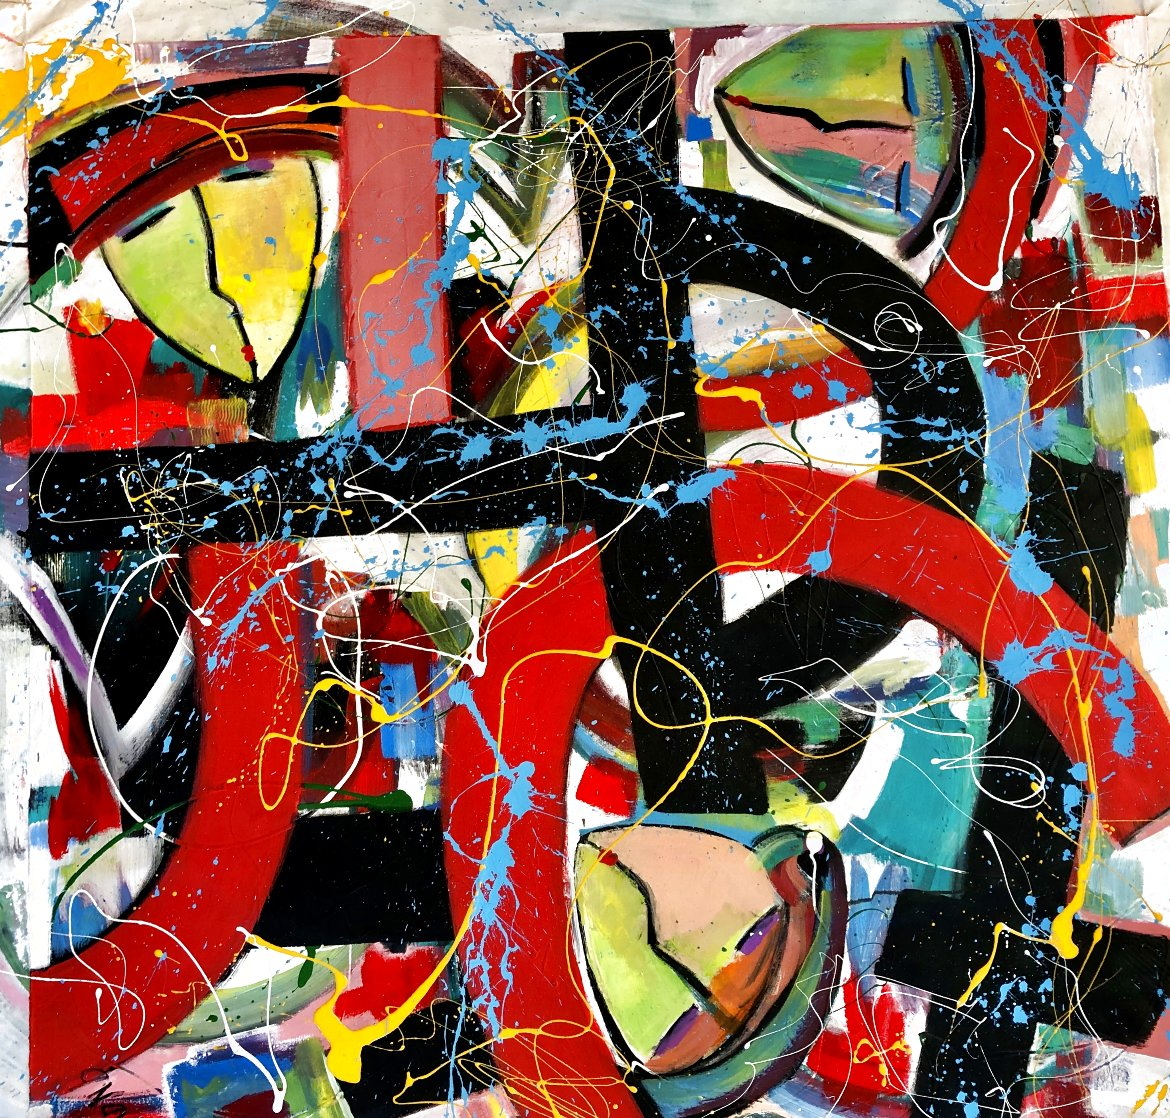 Wound Together 2021 48x48 Super Huge Original Painting by Giora Angres